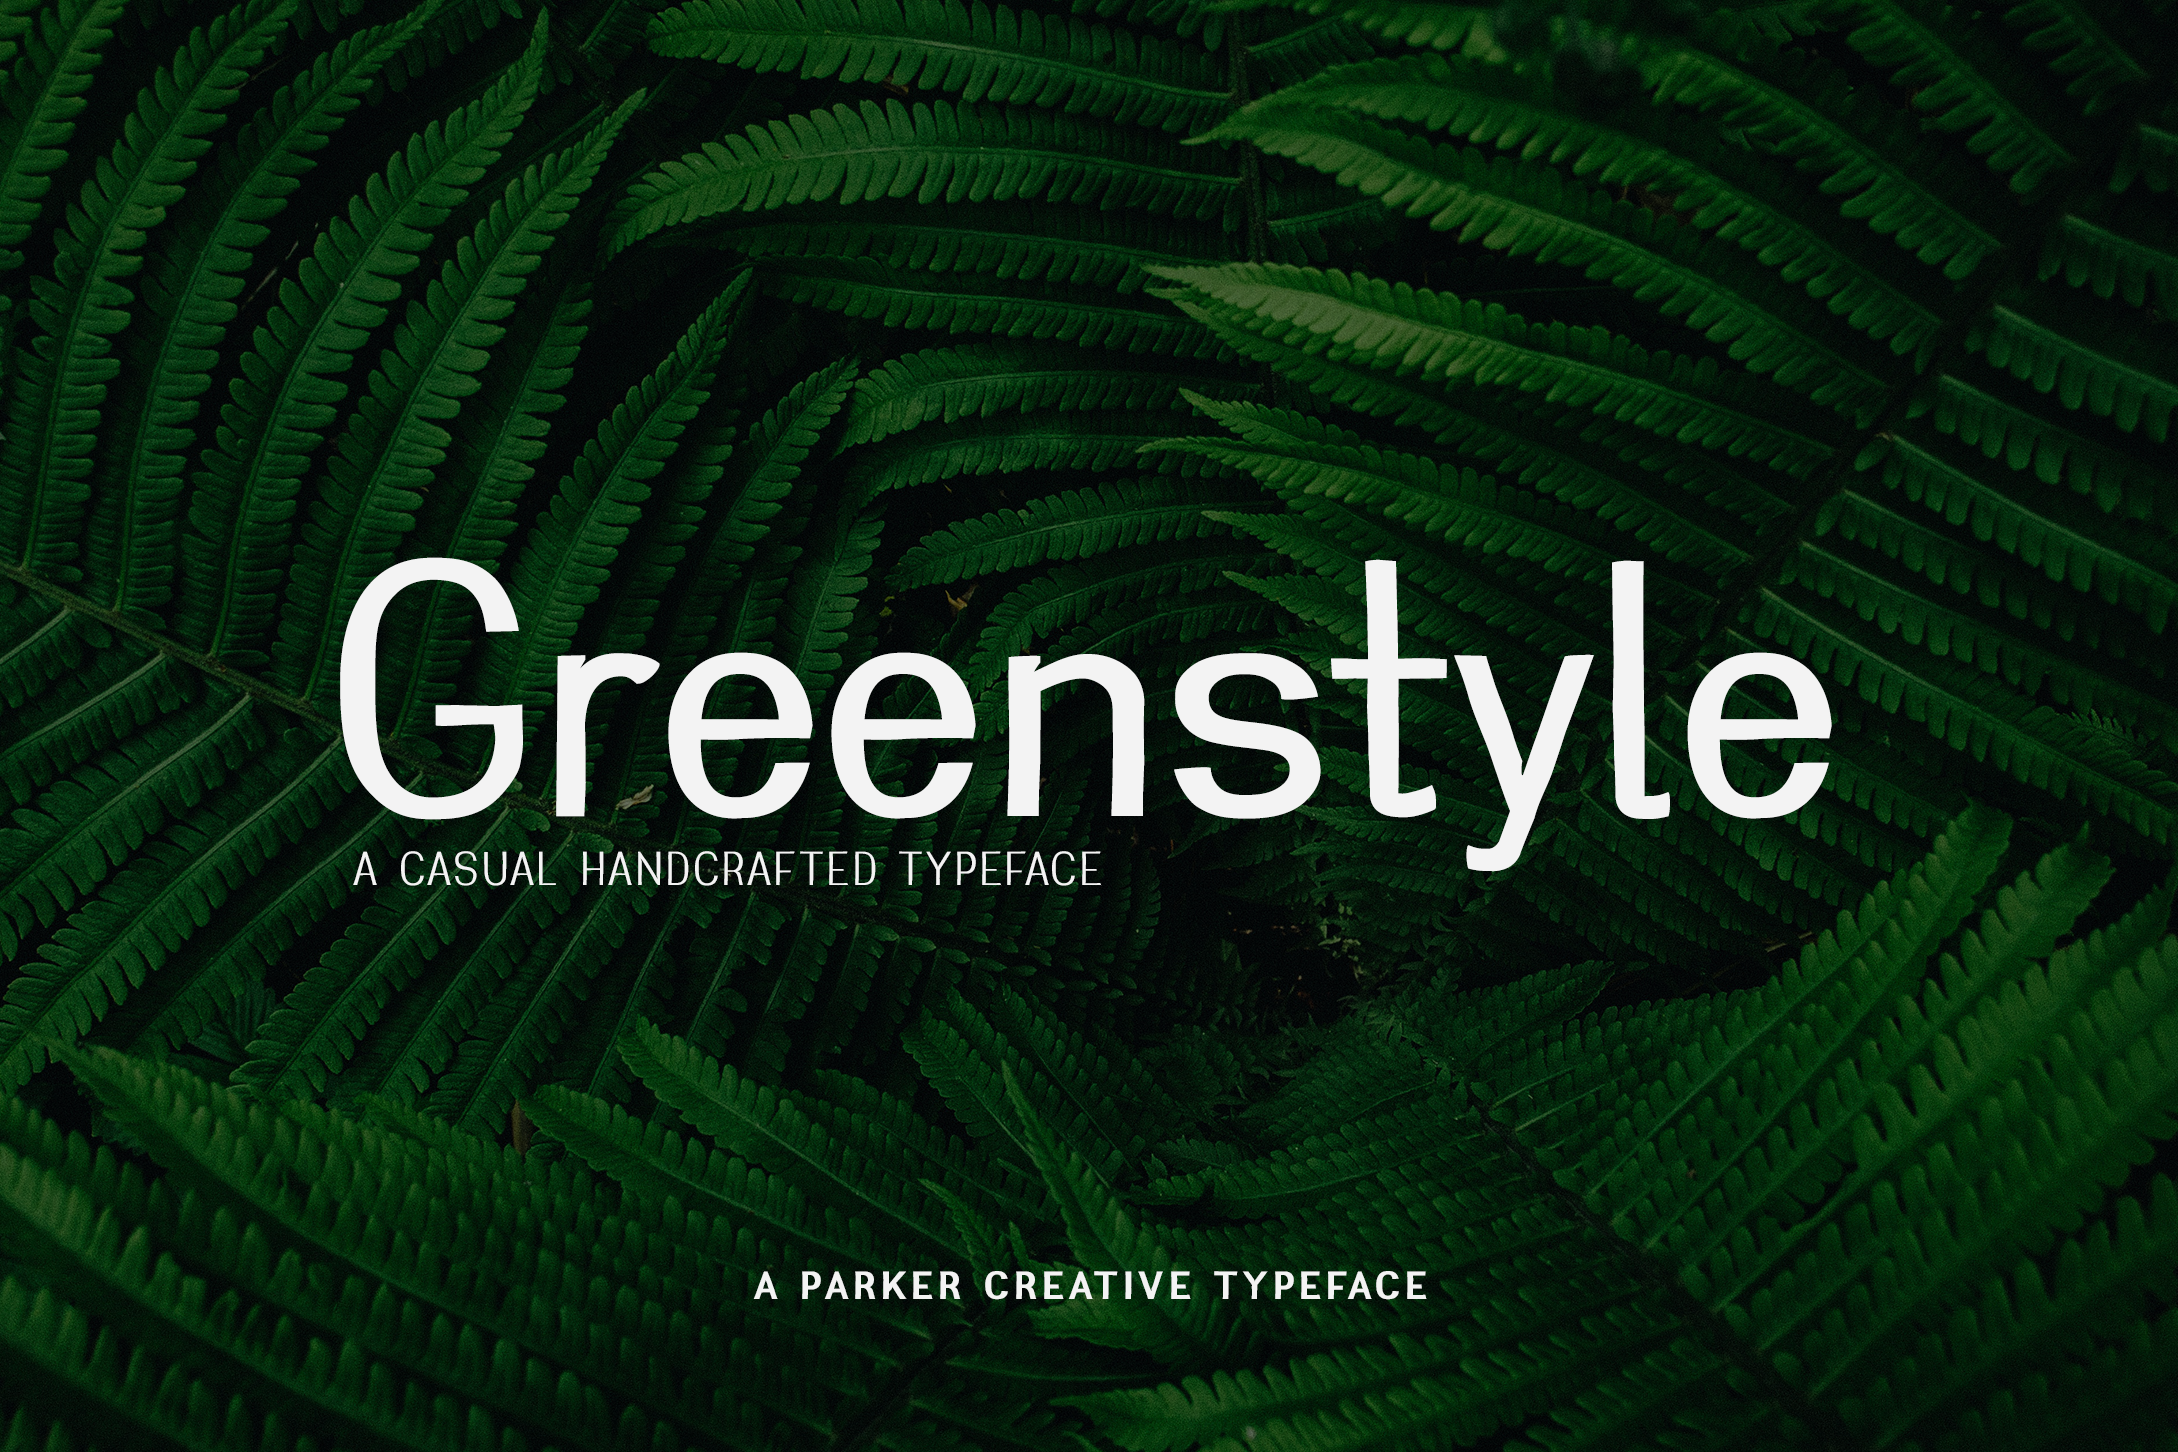 Greenstyle Casual Handcrafted Font example image 1